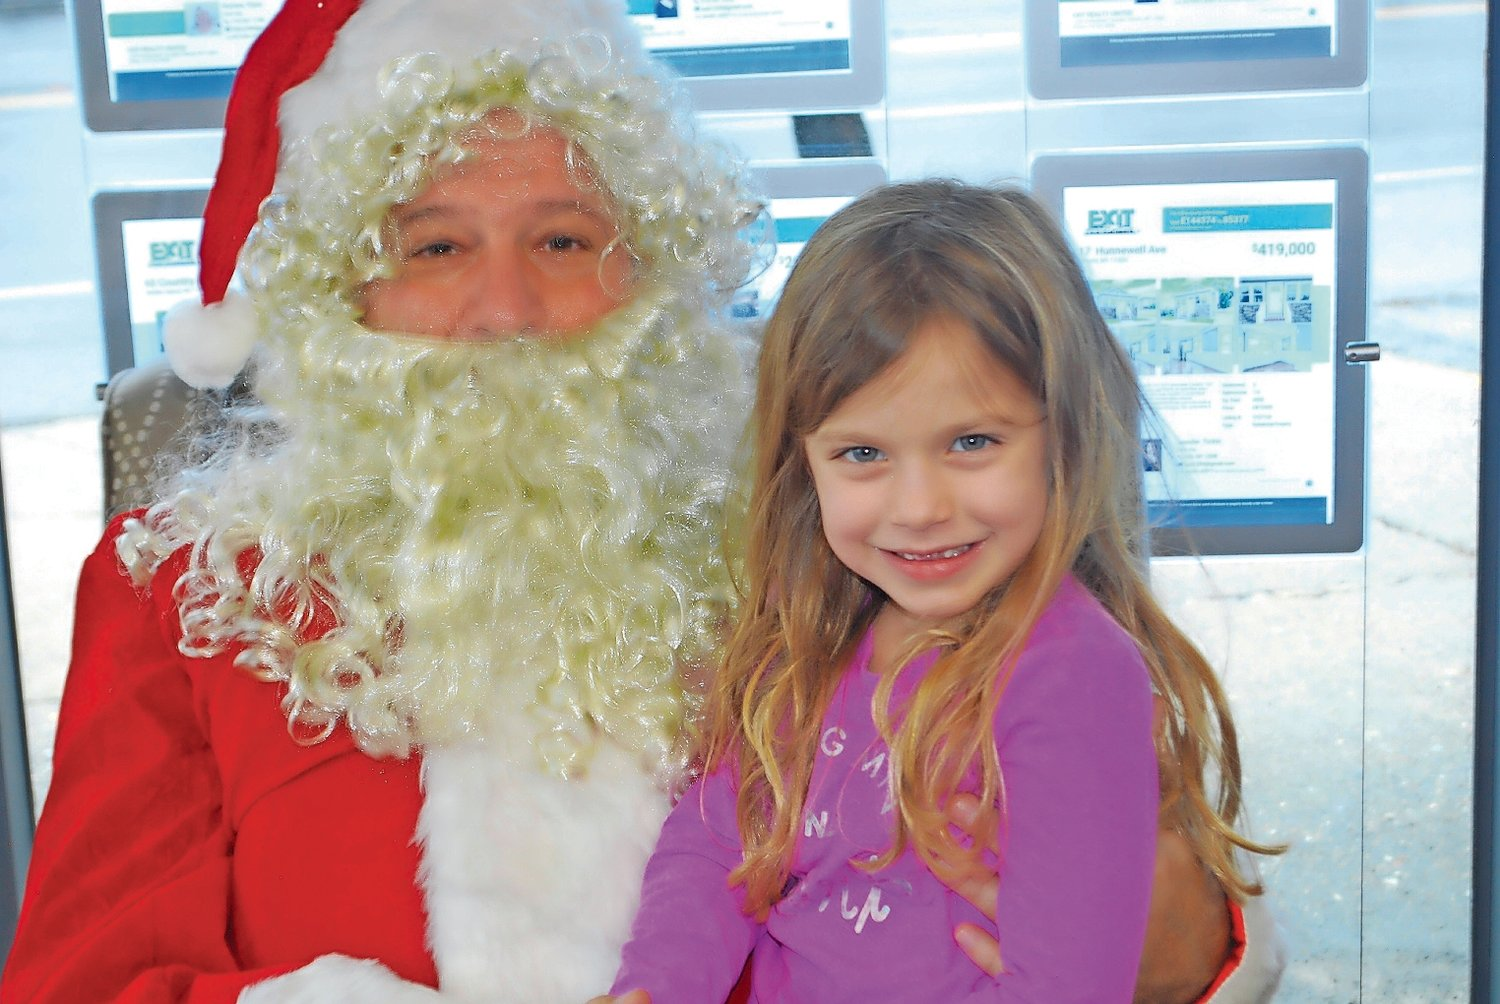 Jayne Hunsberger, 5, could not wait to tell Santa what she wants for Christmas.